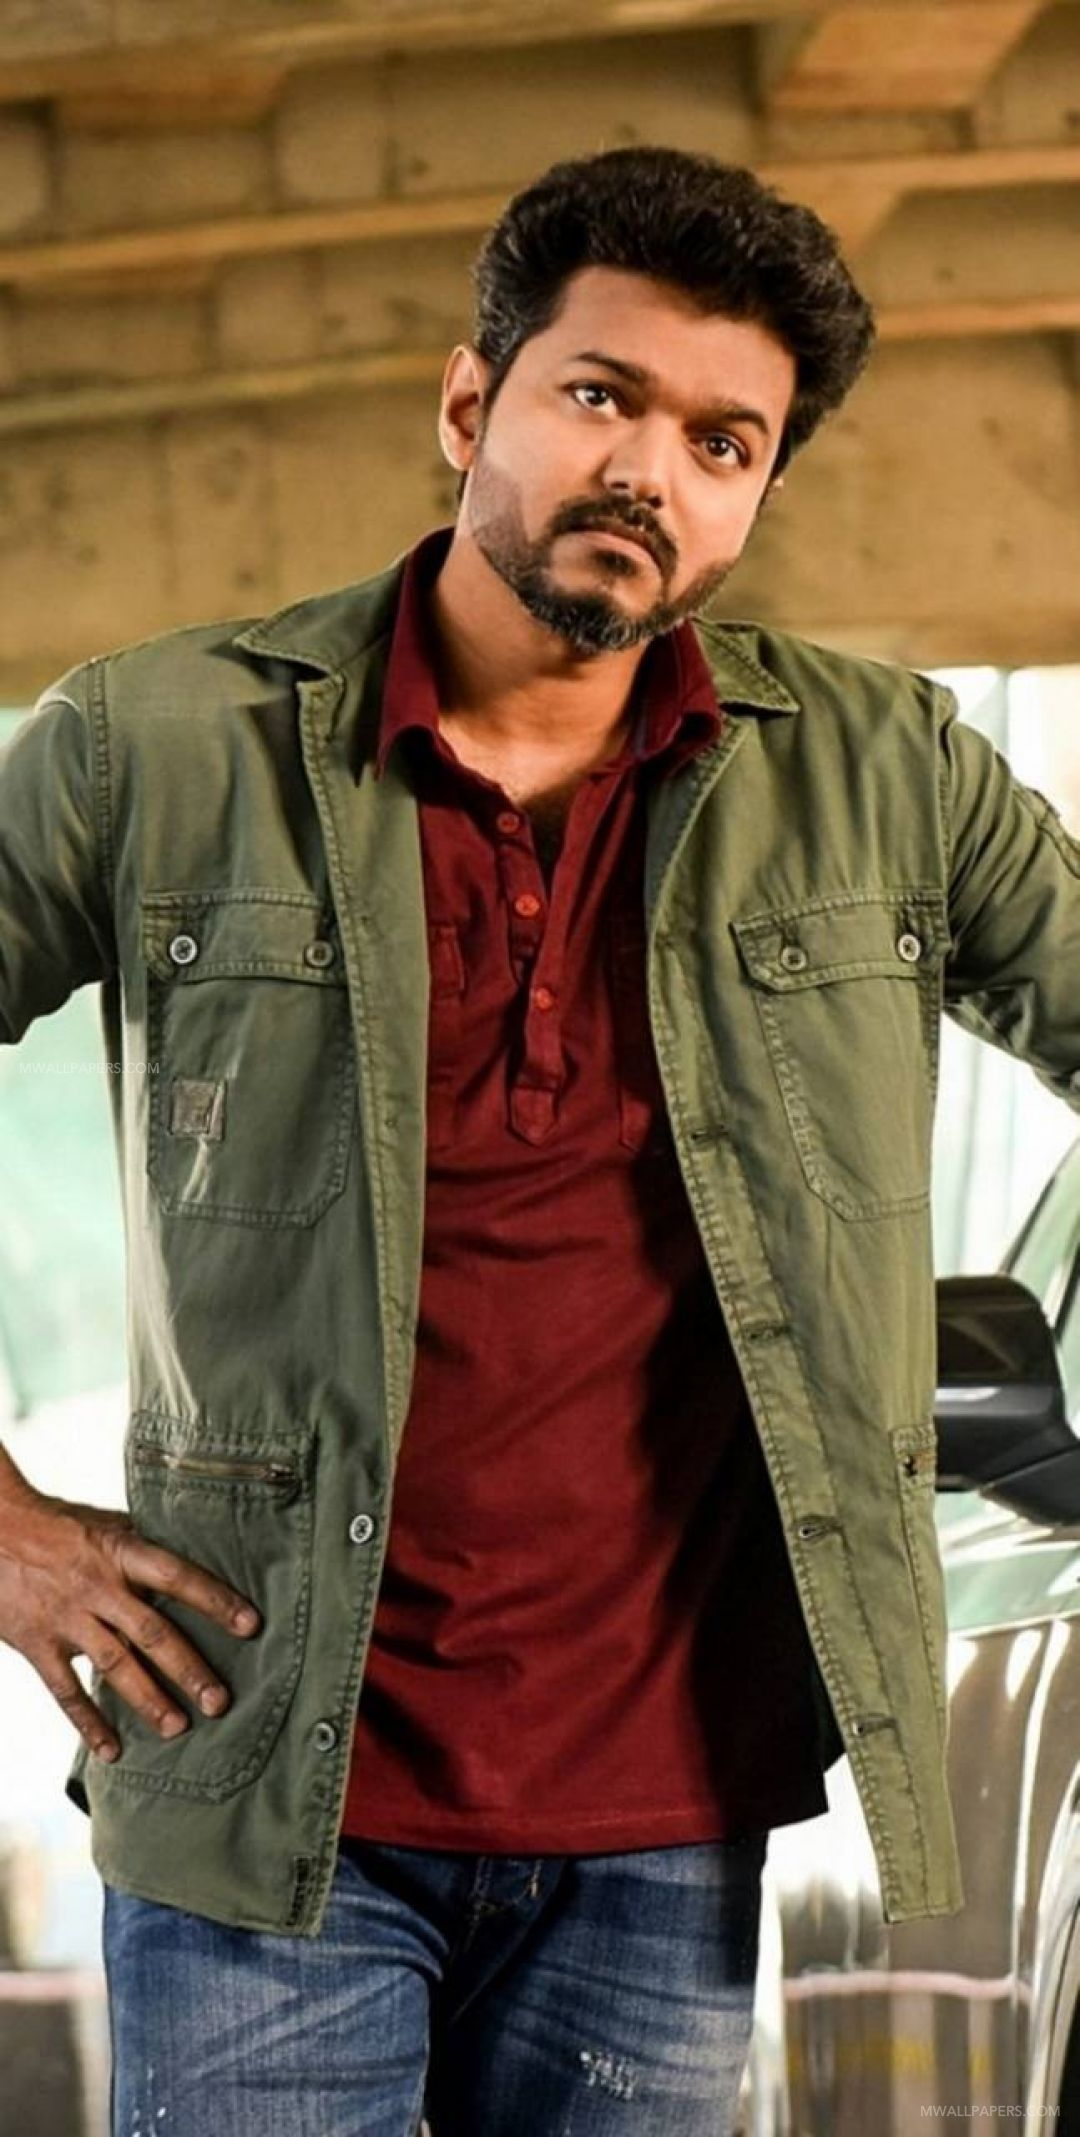 Vijay Full Hd Wallpapers Wallpaper Cave Download amazing 1080x2340 wallpapers and background images for mobile phone and tablet. vijay full hd wallpapers wallpaper cave